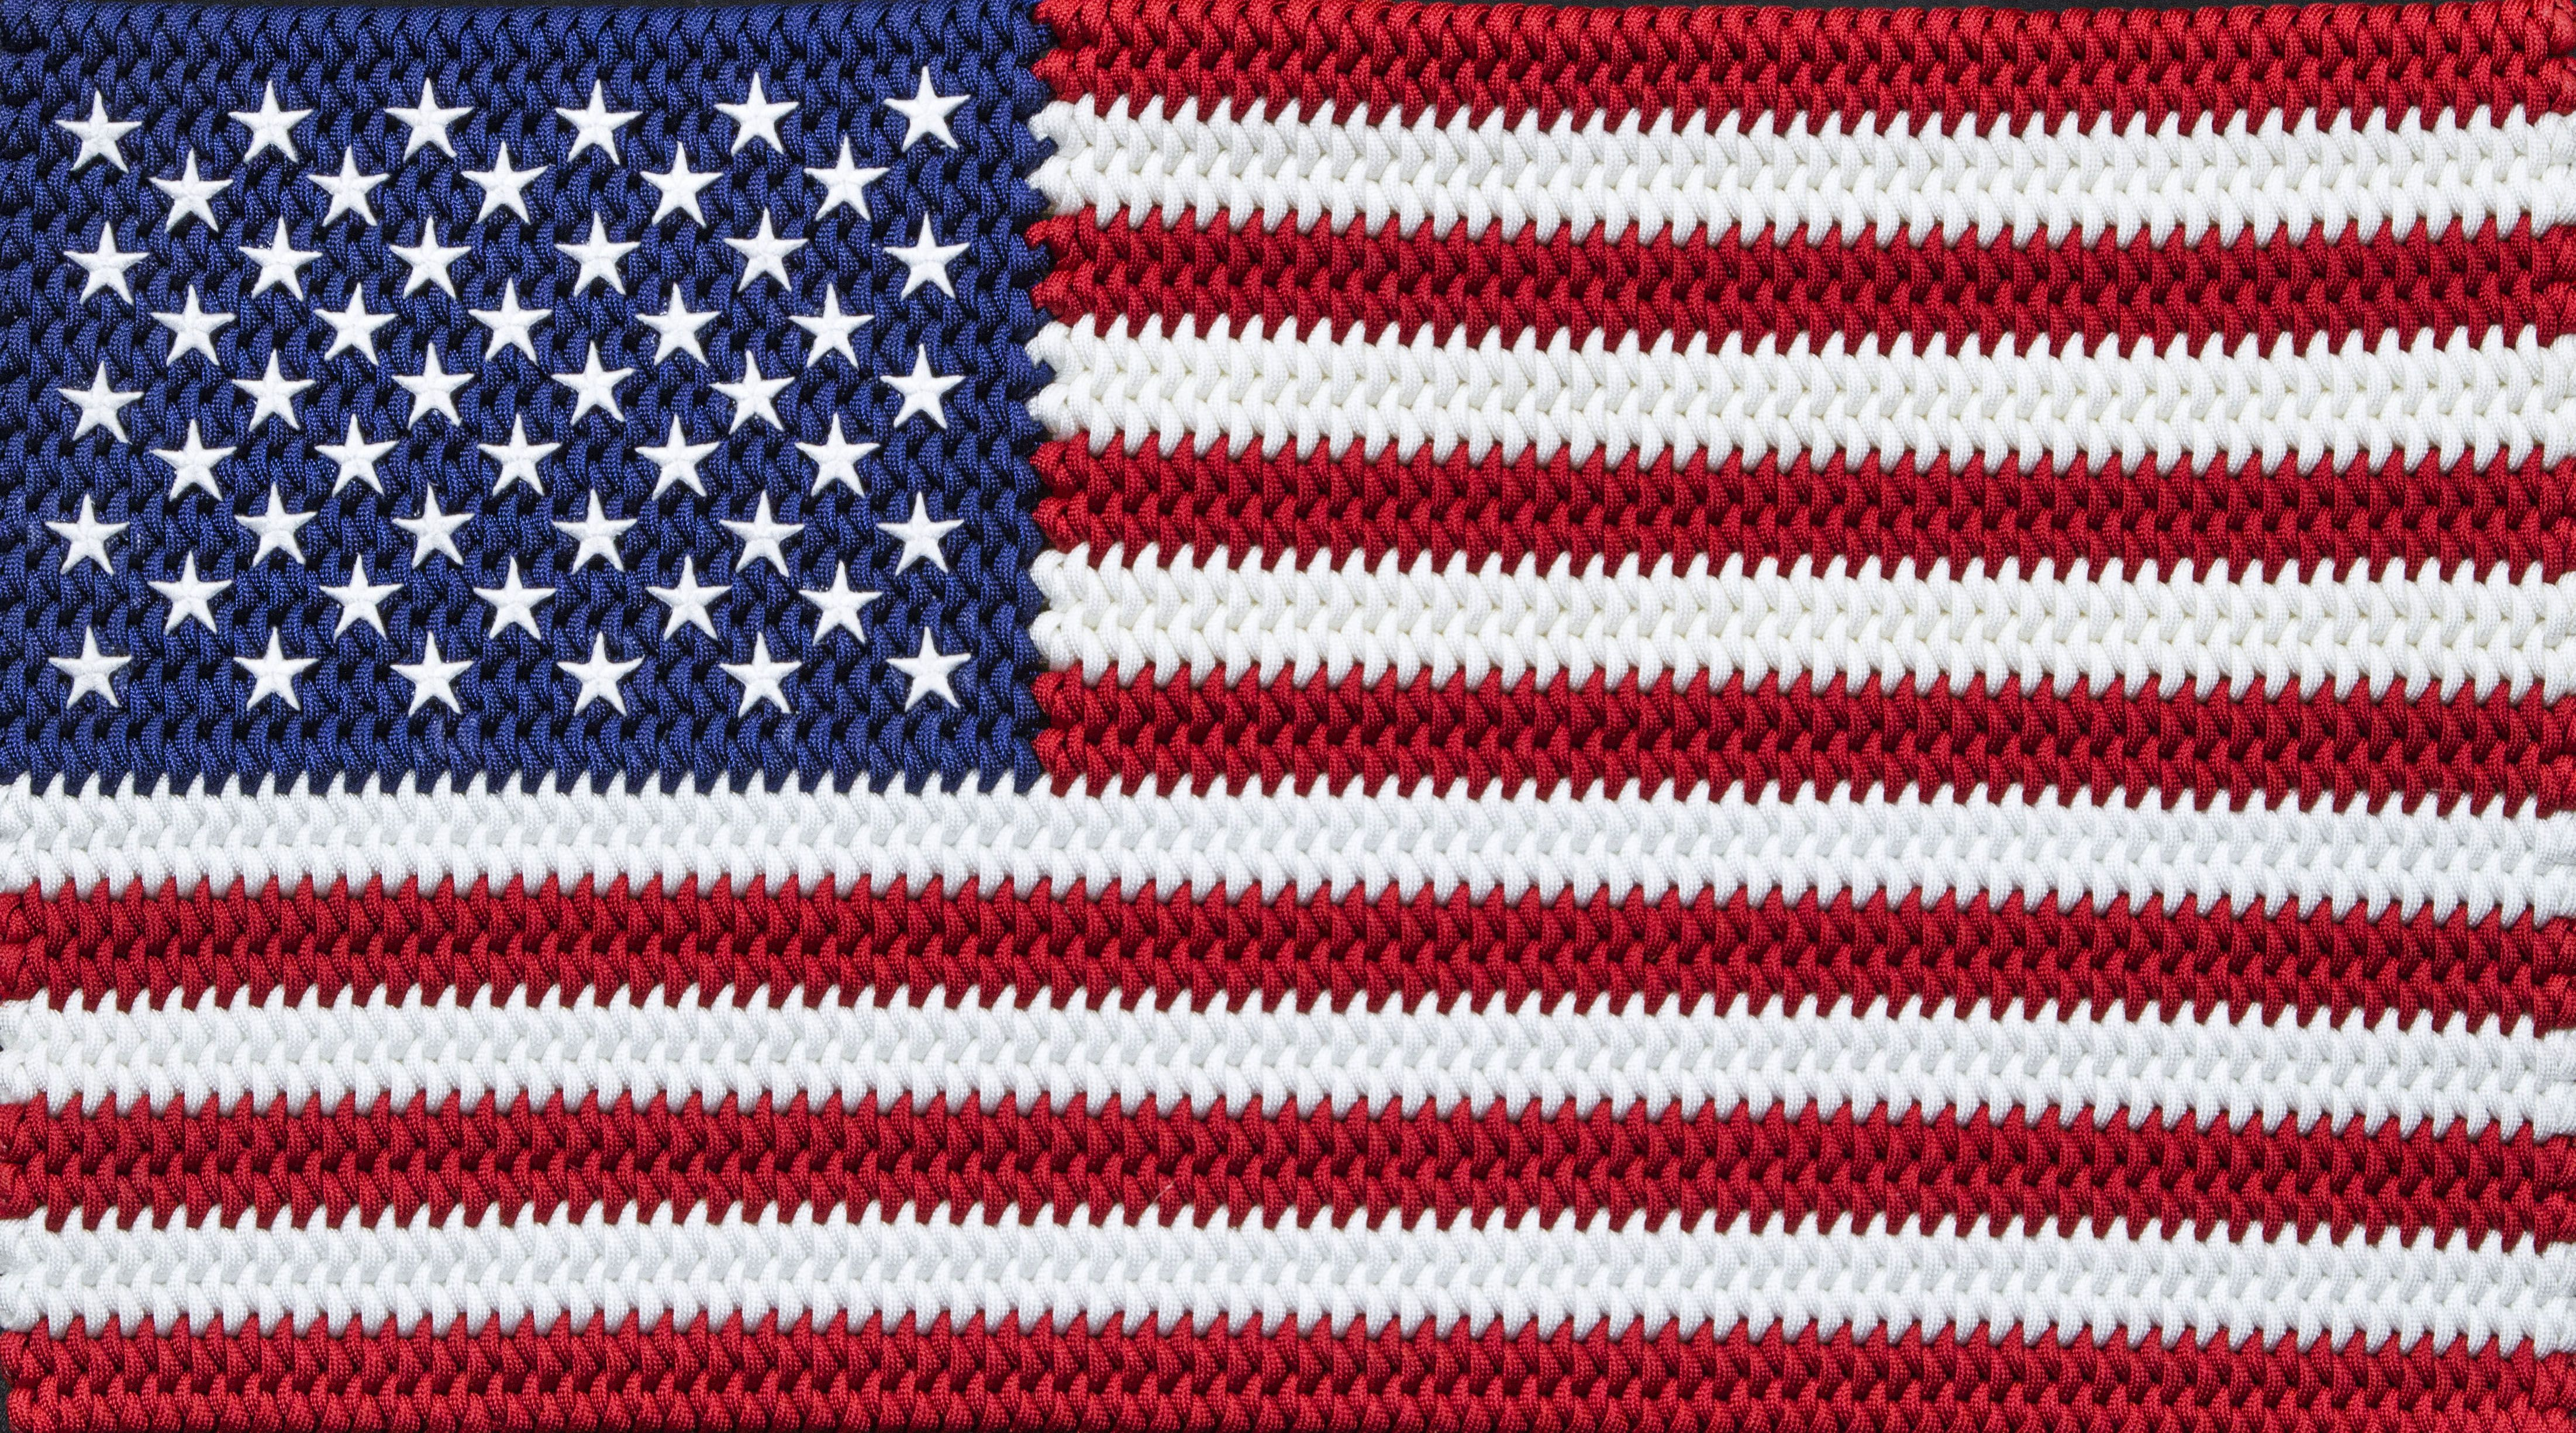 50++ When was the american flag made information